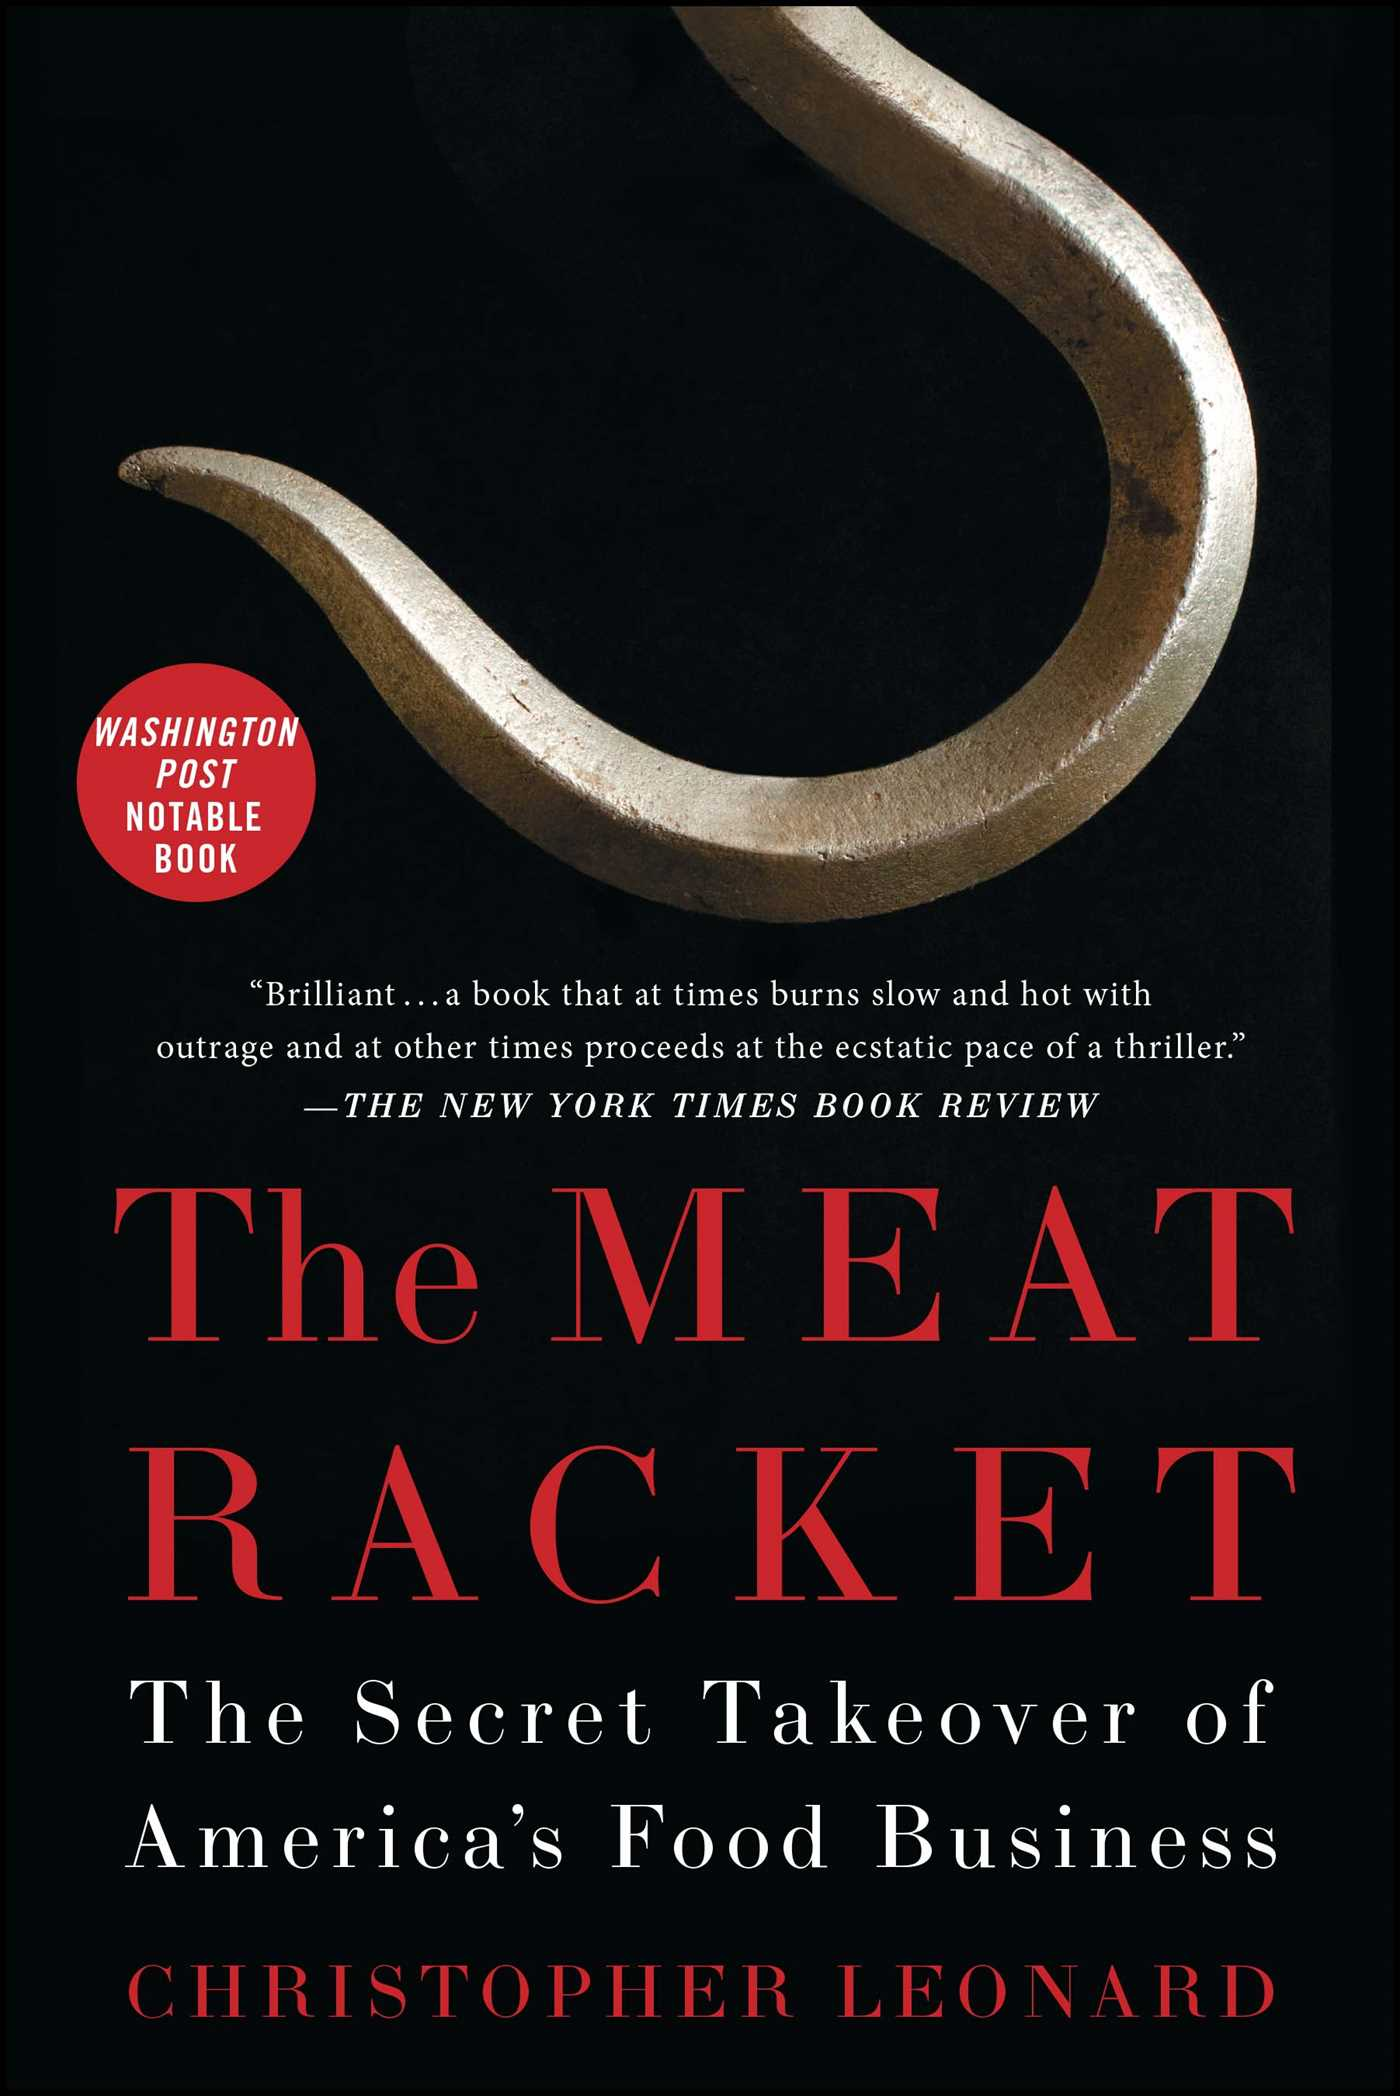 The meat racket 9781451645835 hr